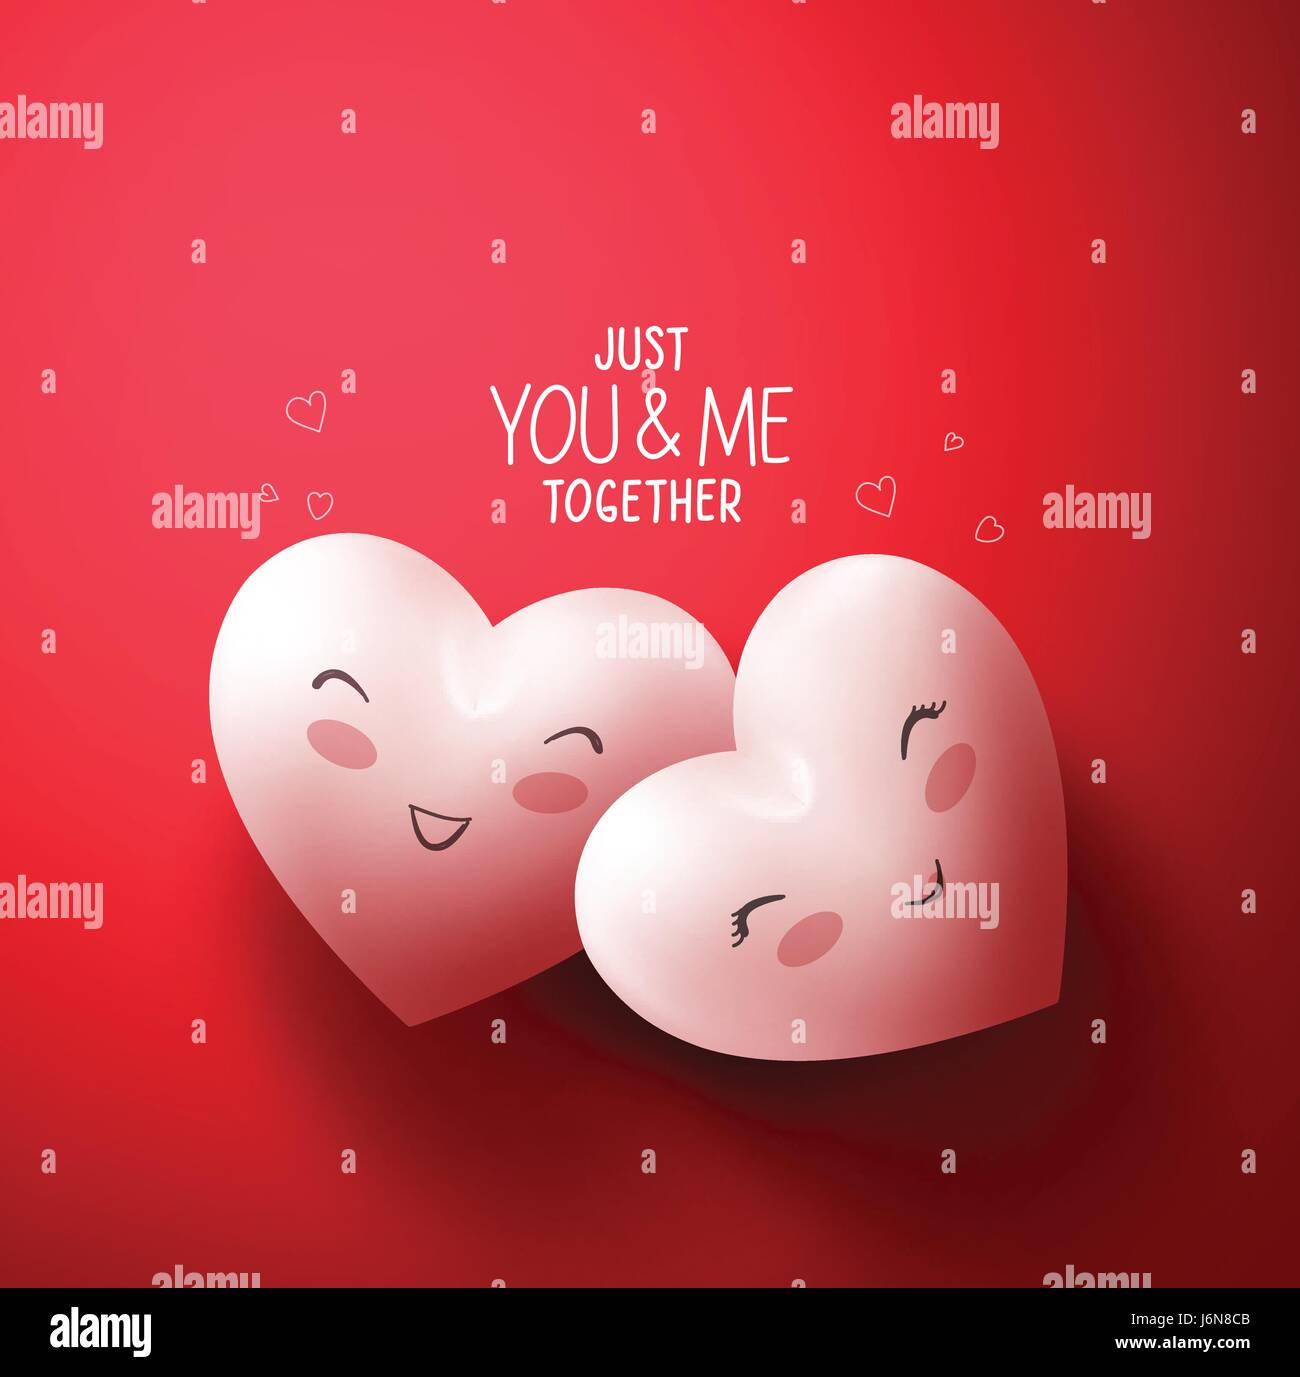 Sweet hearts of happy lovers for happy valentines day greetings in sweet hearts of happy lovers for happy valentines day greetings in red background with you and me together title vector illustration m4hsunfo